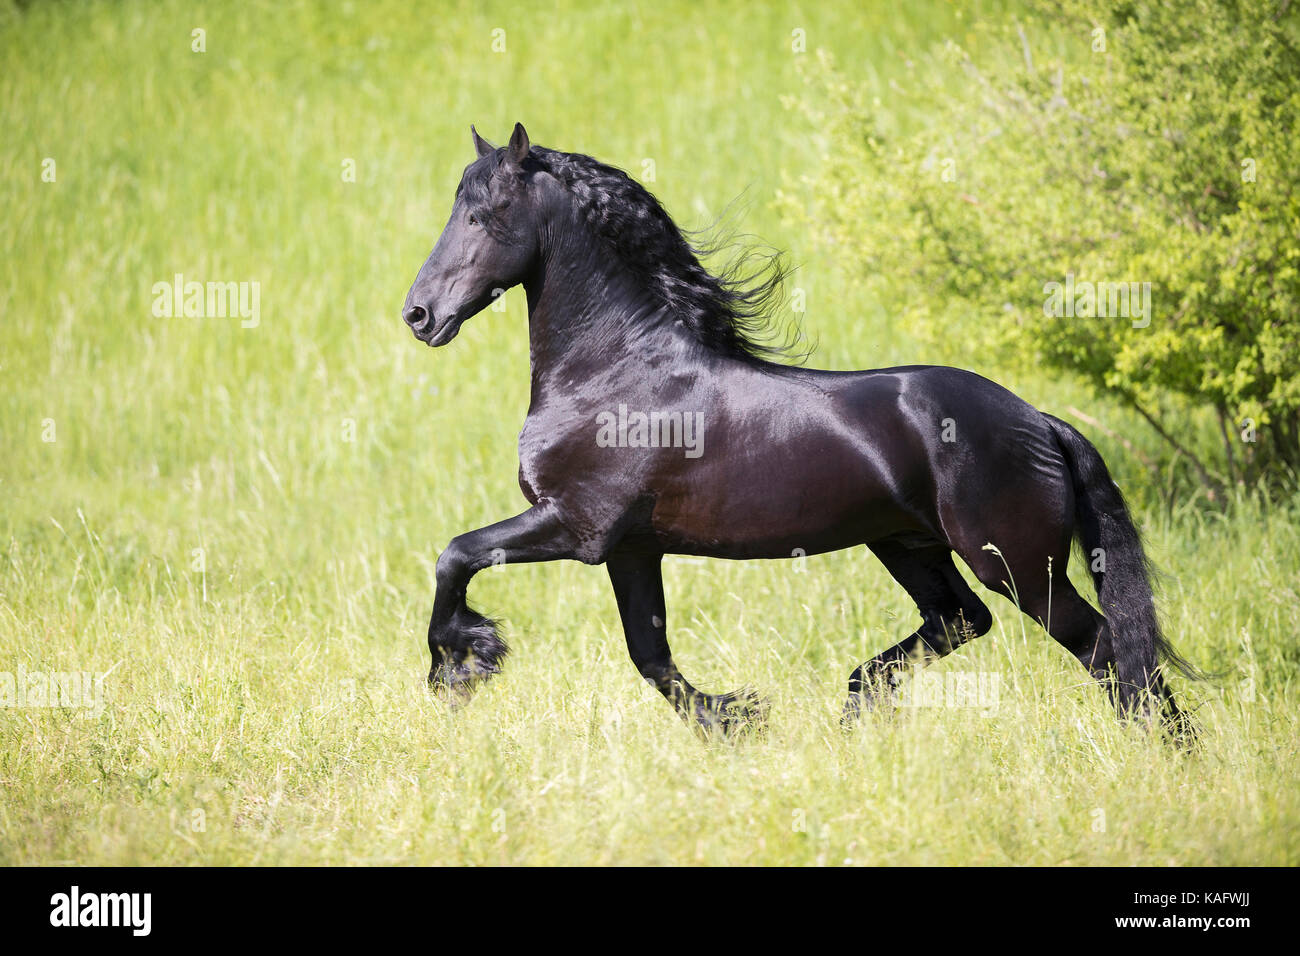 Black Horse High Resolution Stock Photography And Images Alamy